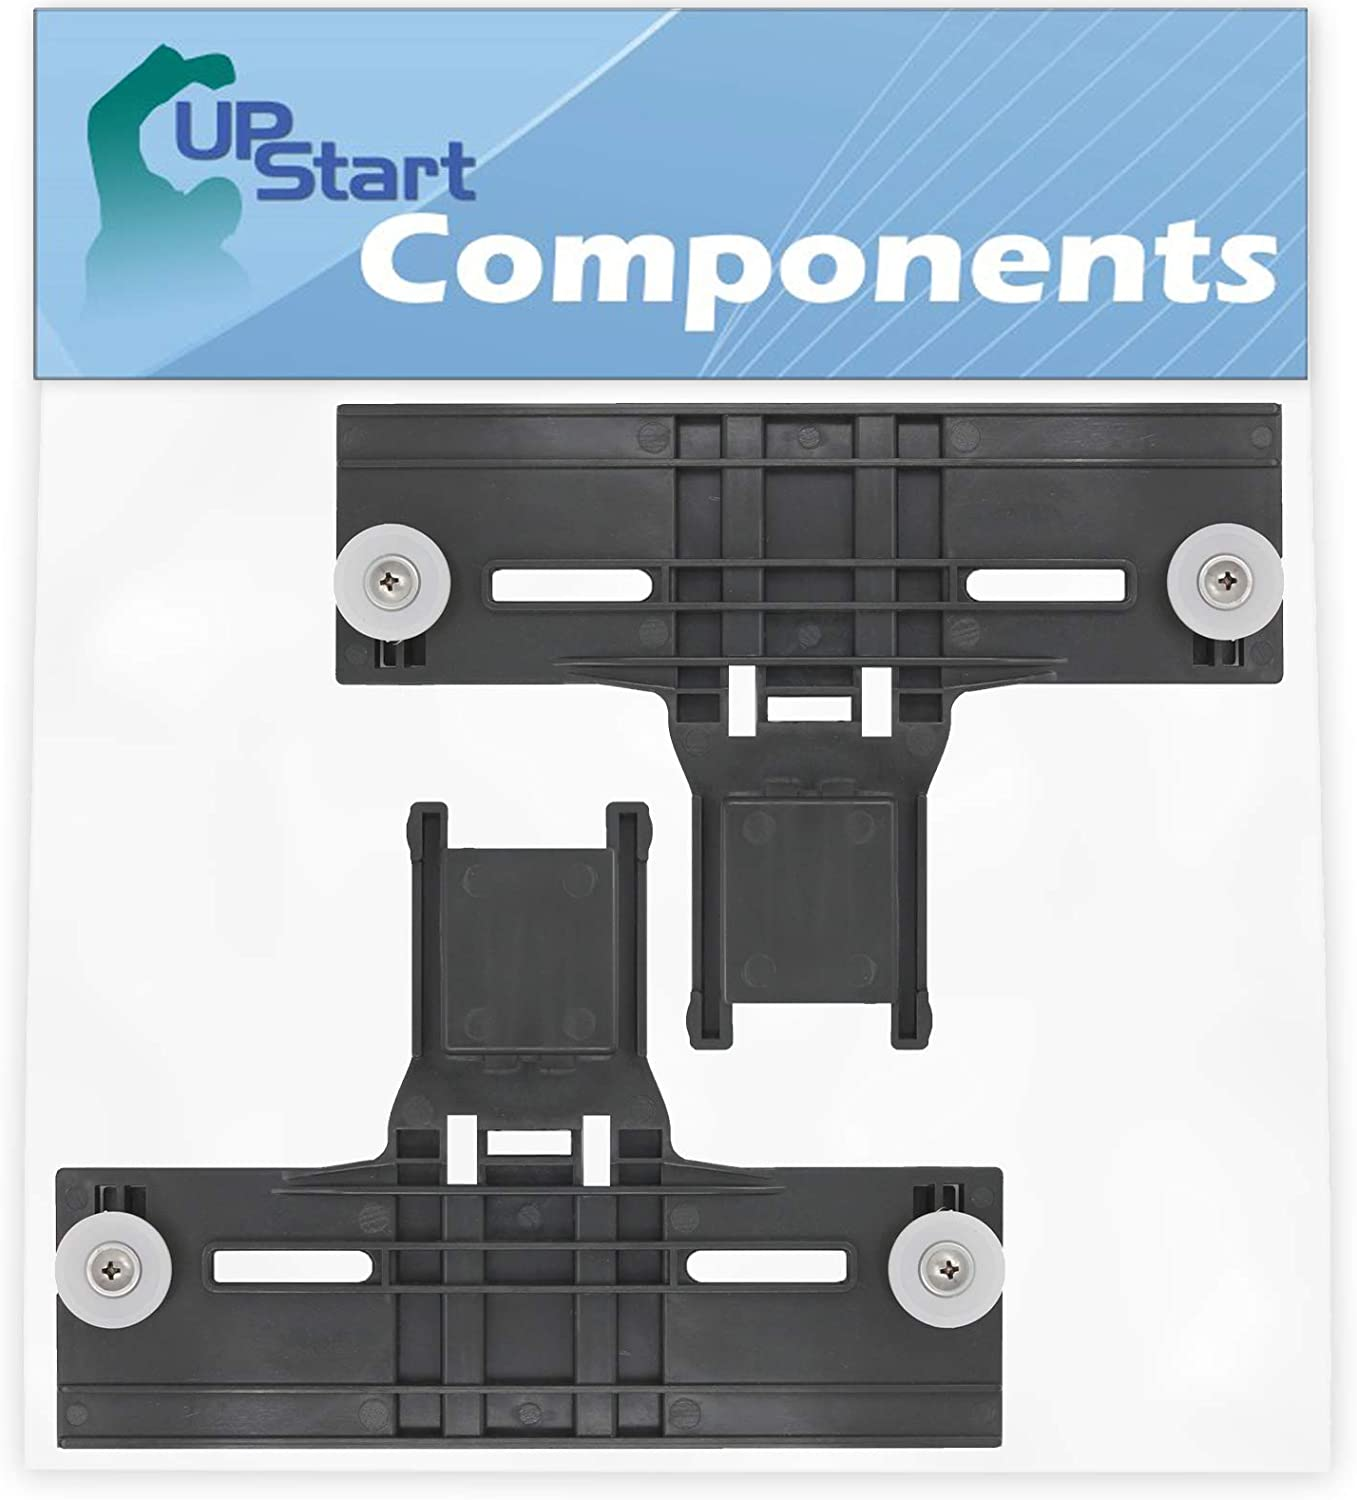 2-Pack W10350375 Dishwasher Top Rack Adjuster Replacement for Whirlpool WDT750SAHV0 Dishwasher - Compatible with W10350375 Upper Top Rack Adjuster - UpStart Components Brand